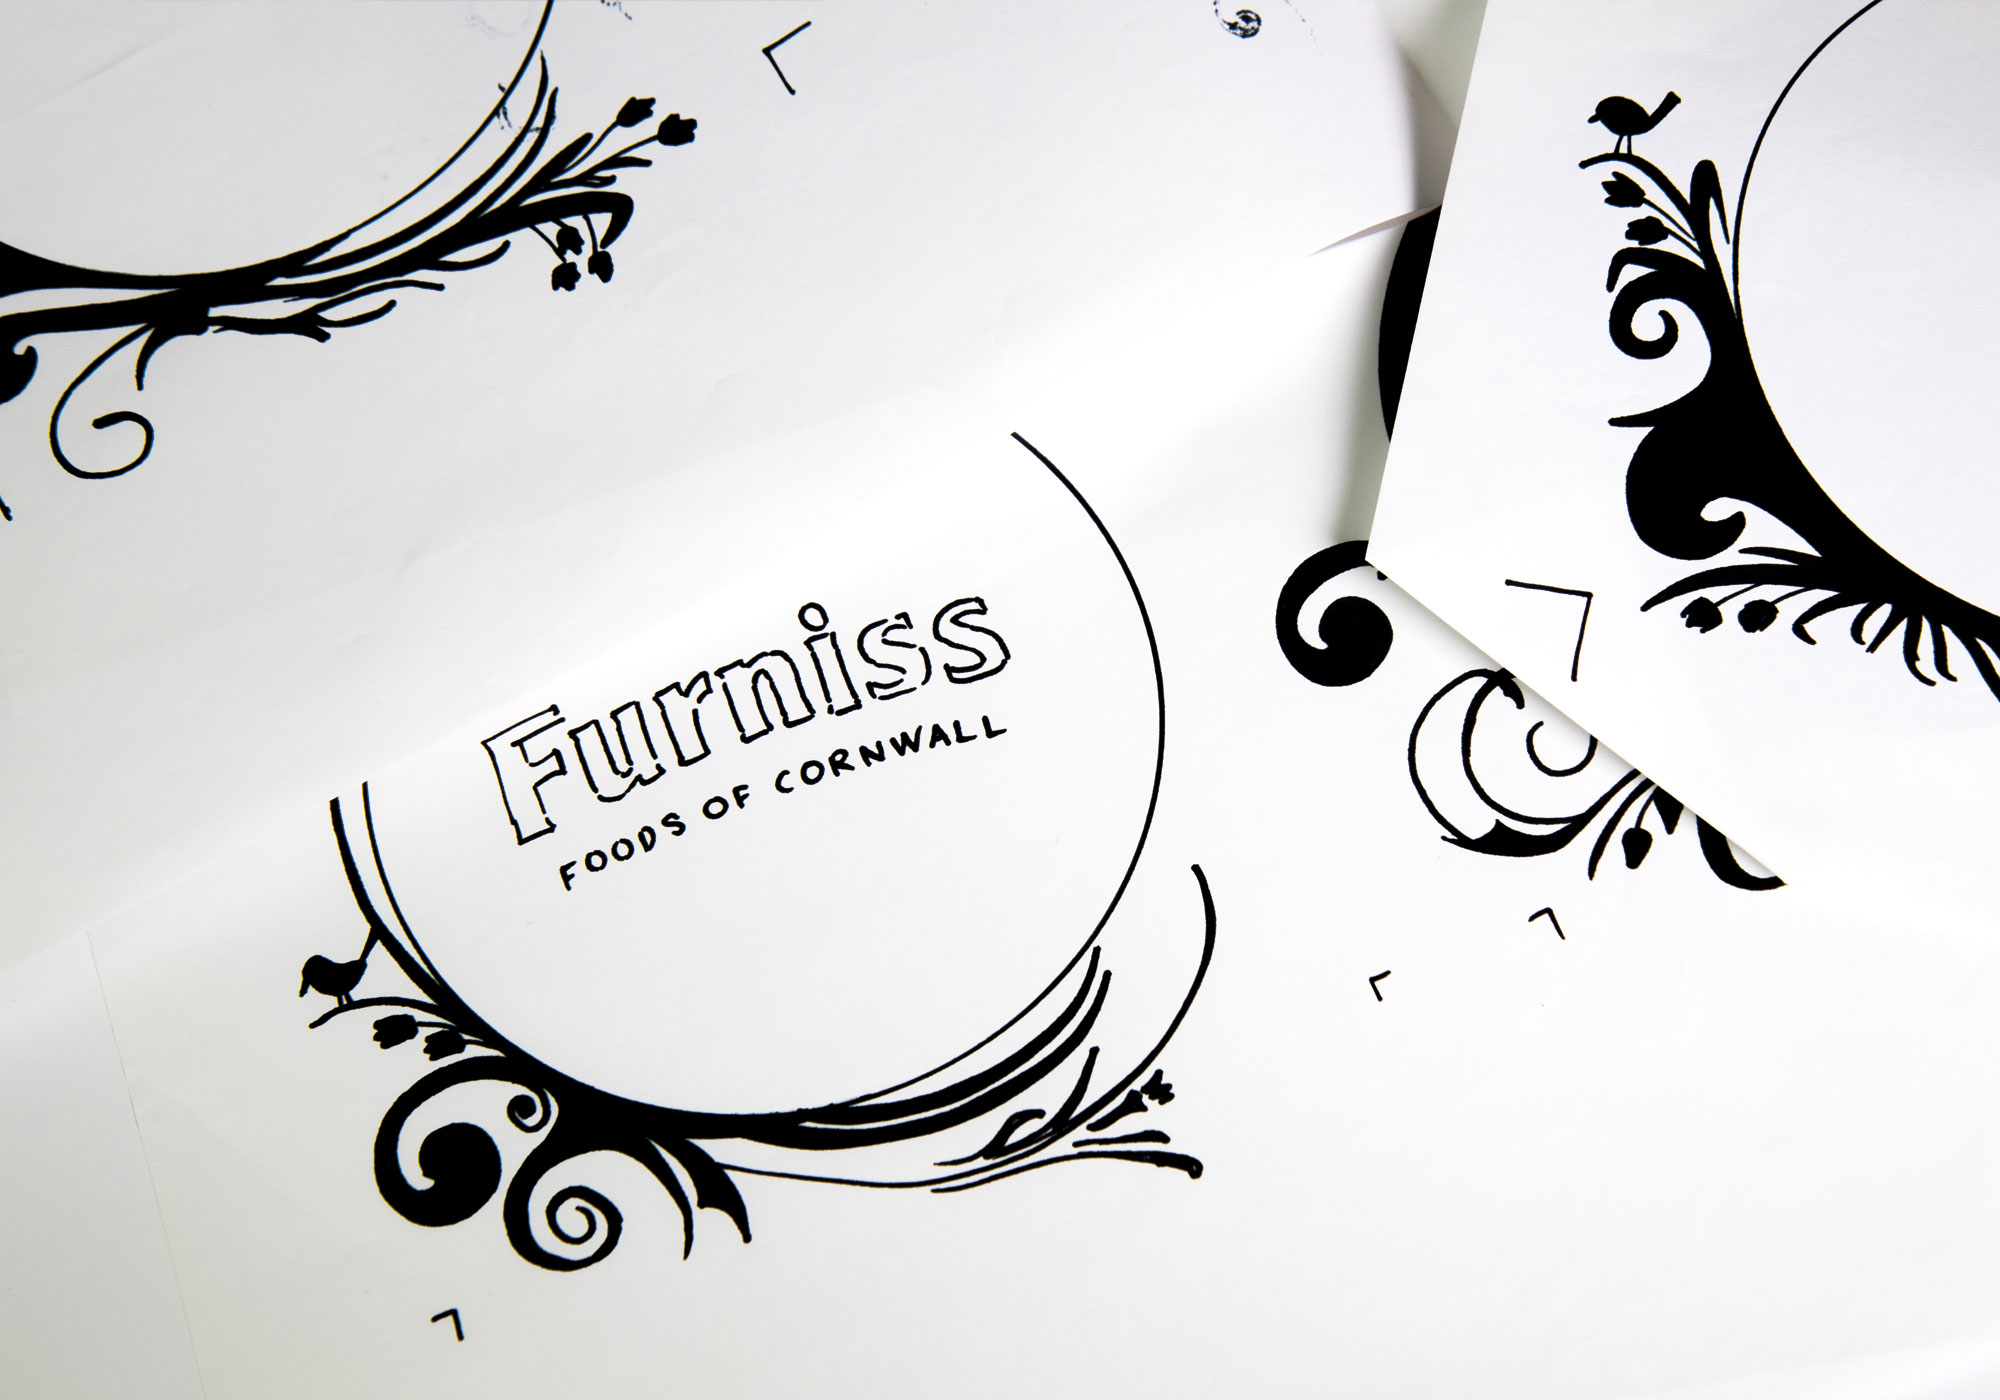 voice-group-web-client-work-2017-S1-furniss-packaging-02.jpg